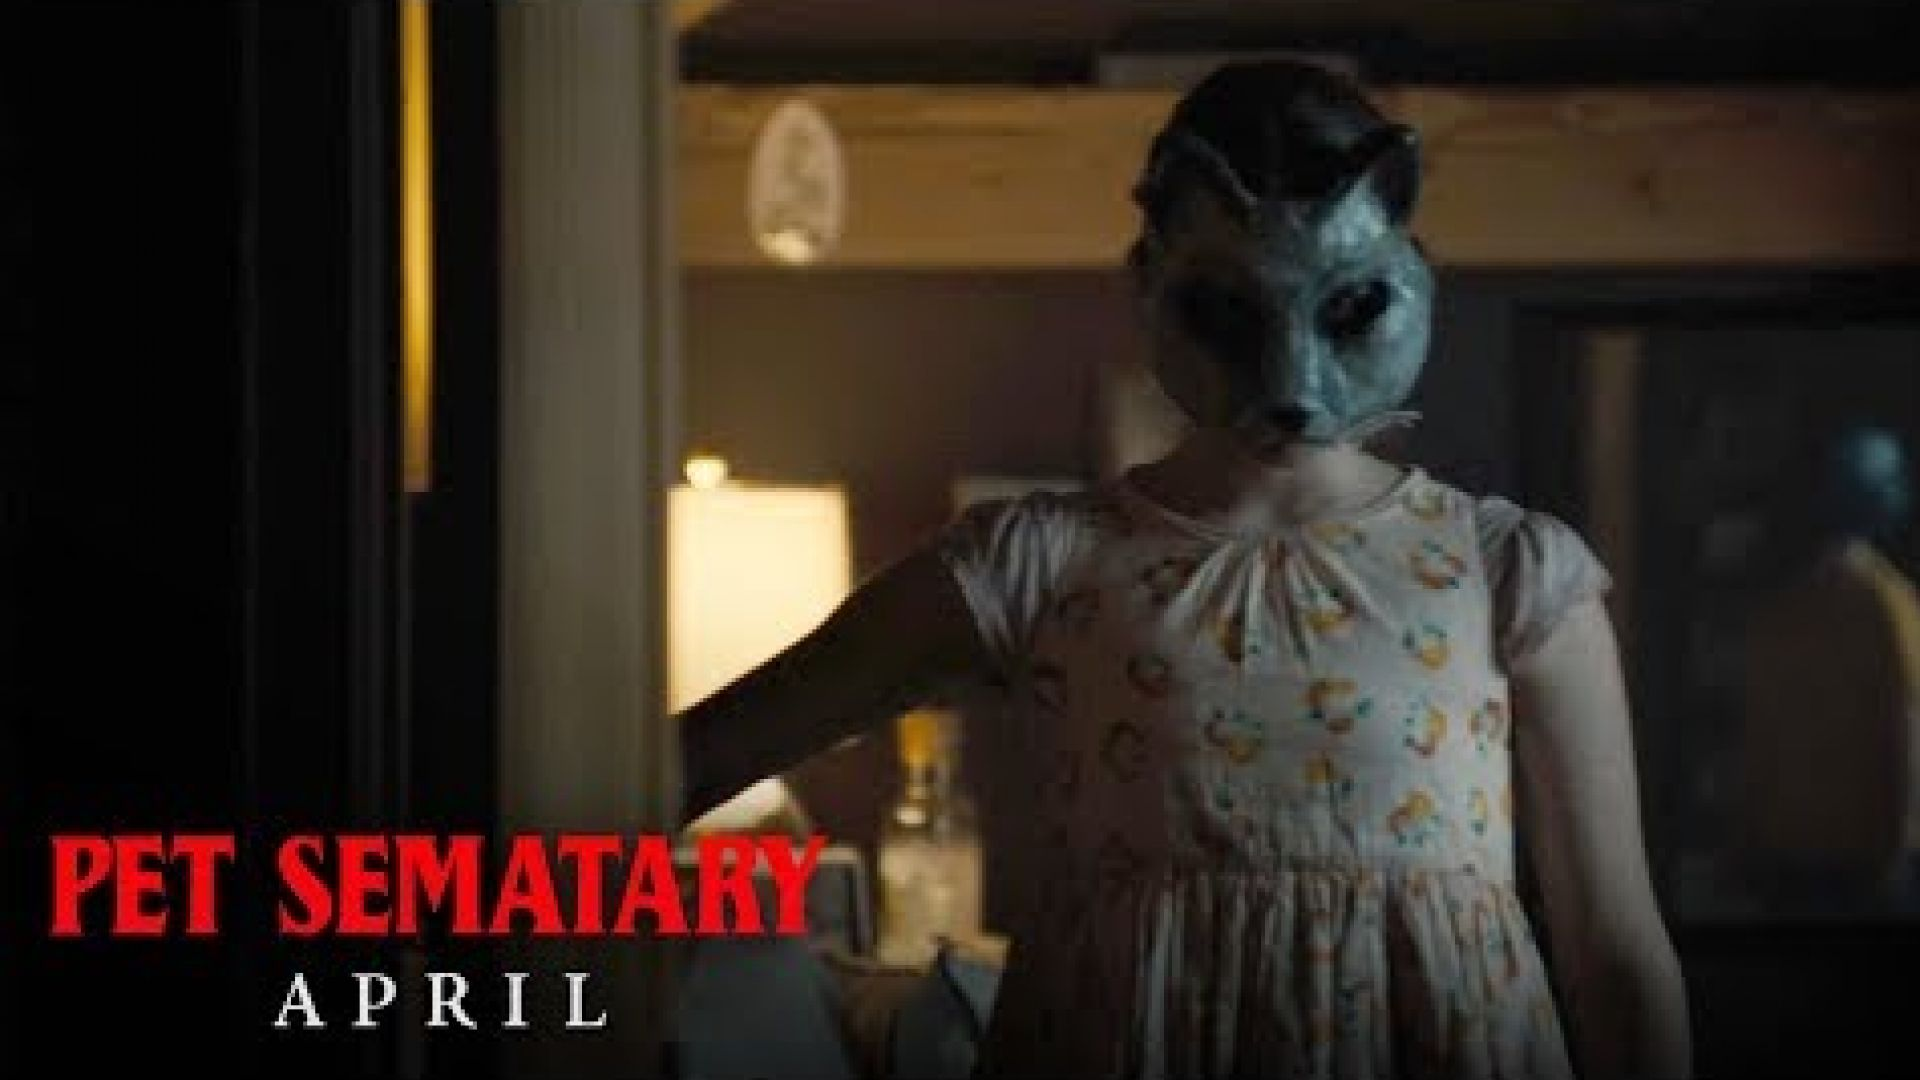 'Pet Sematary' Sometimes Dead Is Better' 15 second teaser